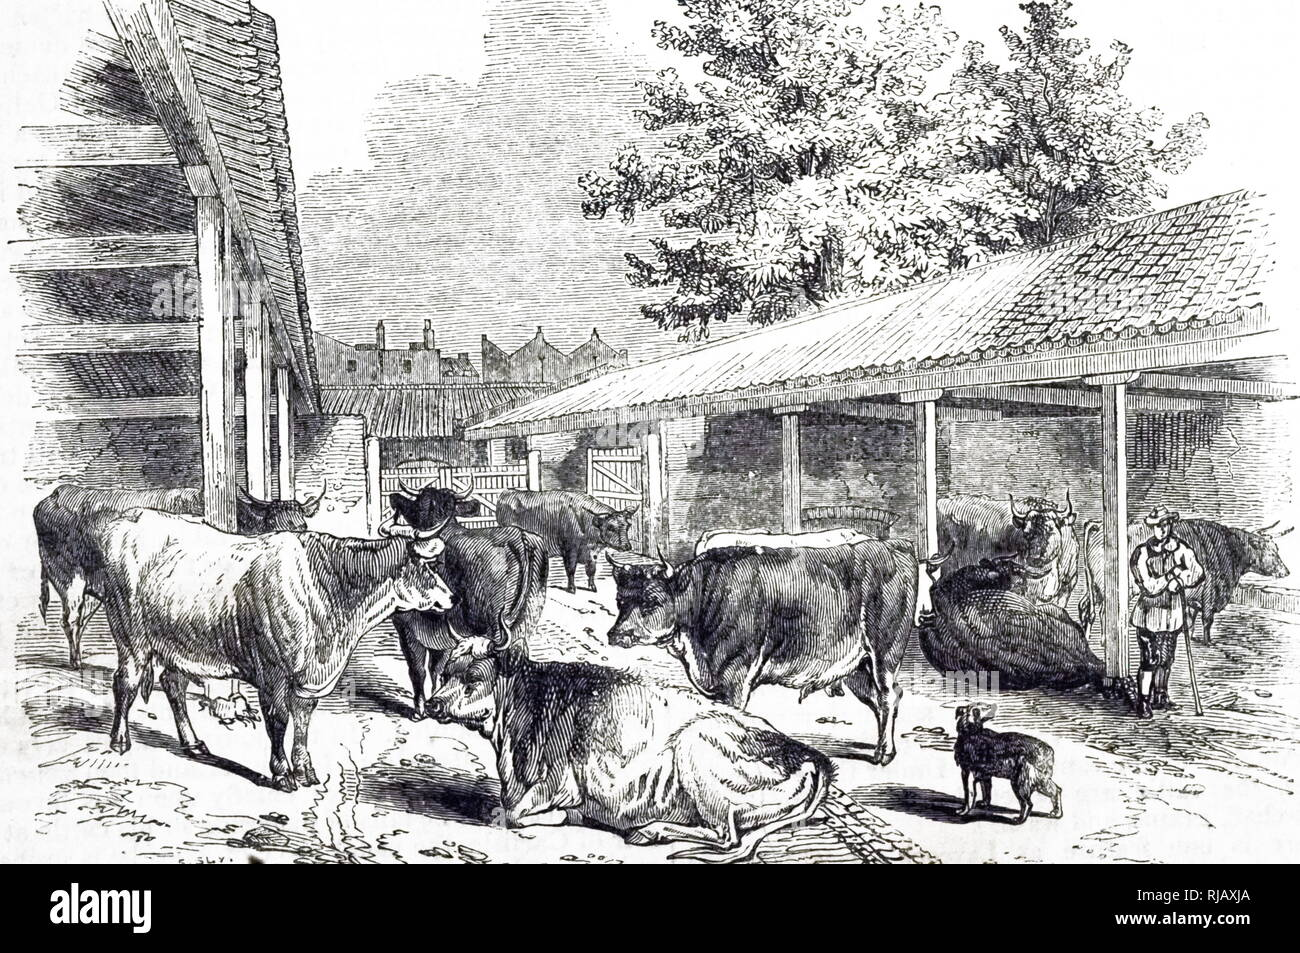 An engraving depicting a cattle layer at Highbury, North London. Cattle drovers would bring cattle from Galloway, Norfolk and Suffolk where they were fattened. Some were sent to Smithfield for sale, and these were housed in cattle layers for a few nights until sale day arrived. Dated 19th century - Stock Image